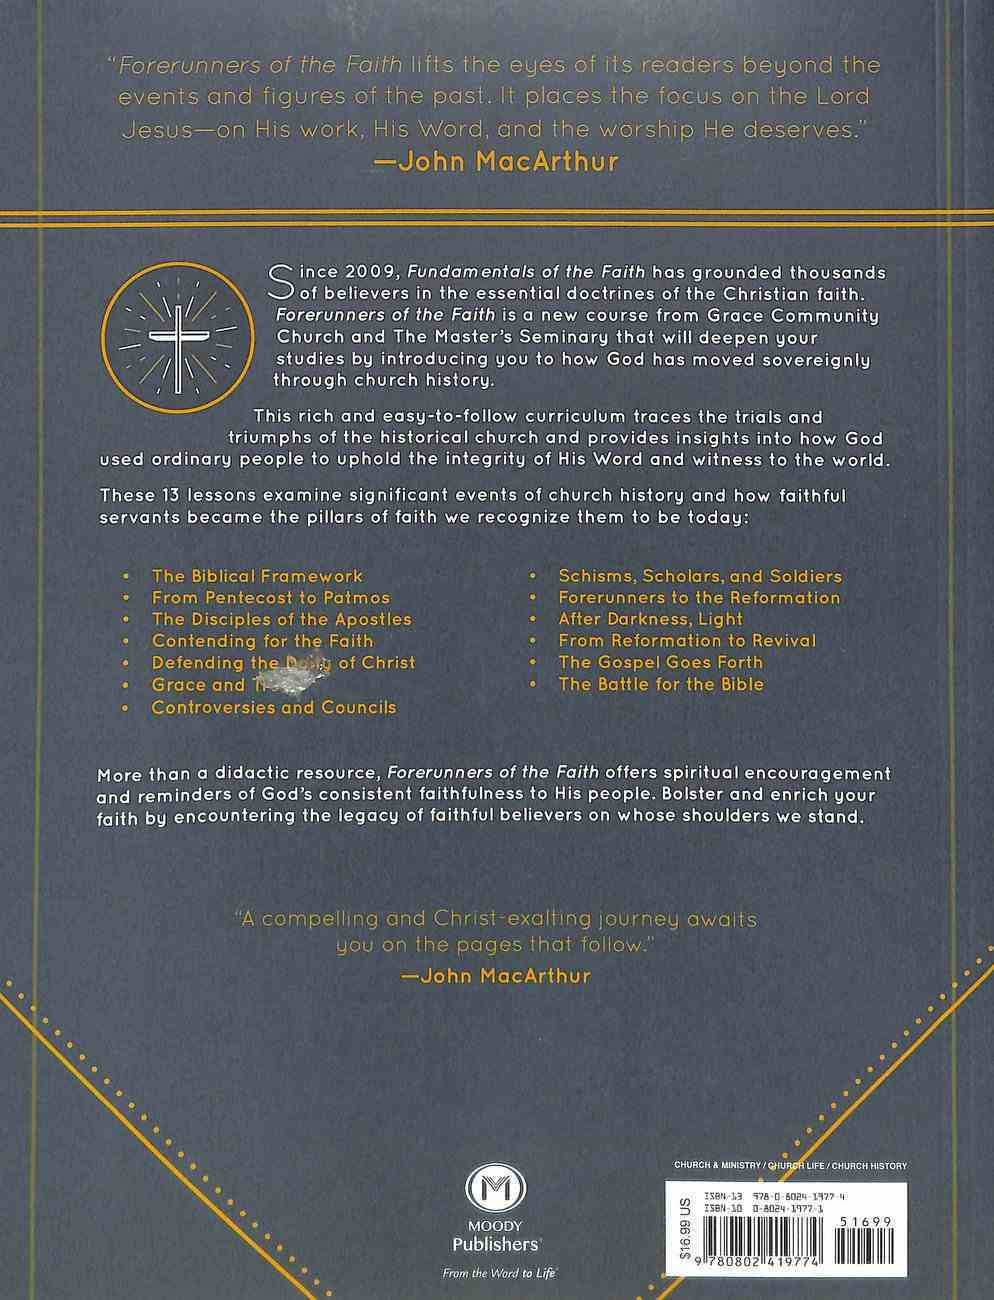 Forerunners of the Faith: 13 Lessons to Celebrate Our Christian Heritage (Teachers Guide) Paperback